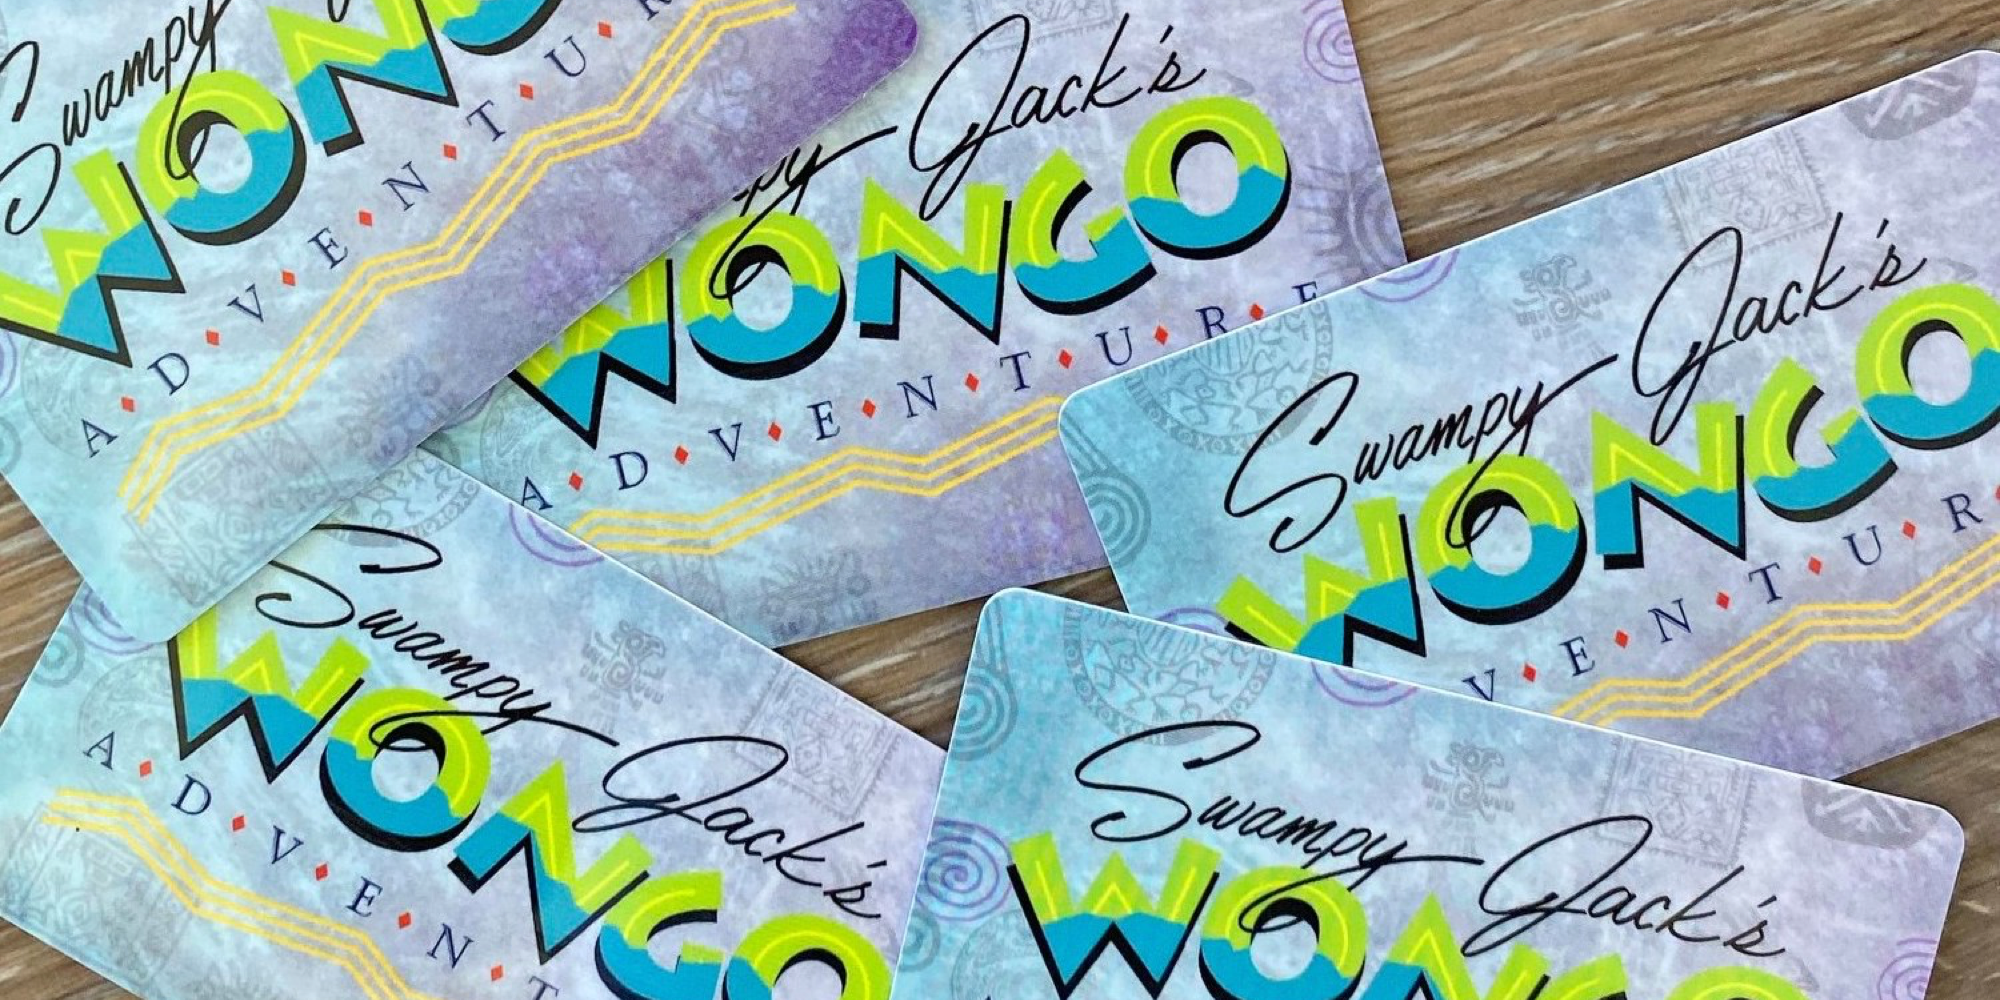 Your Wongo Card is your passport to adventure at Swampy Jack's Wongo Adventure